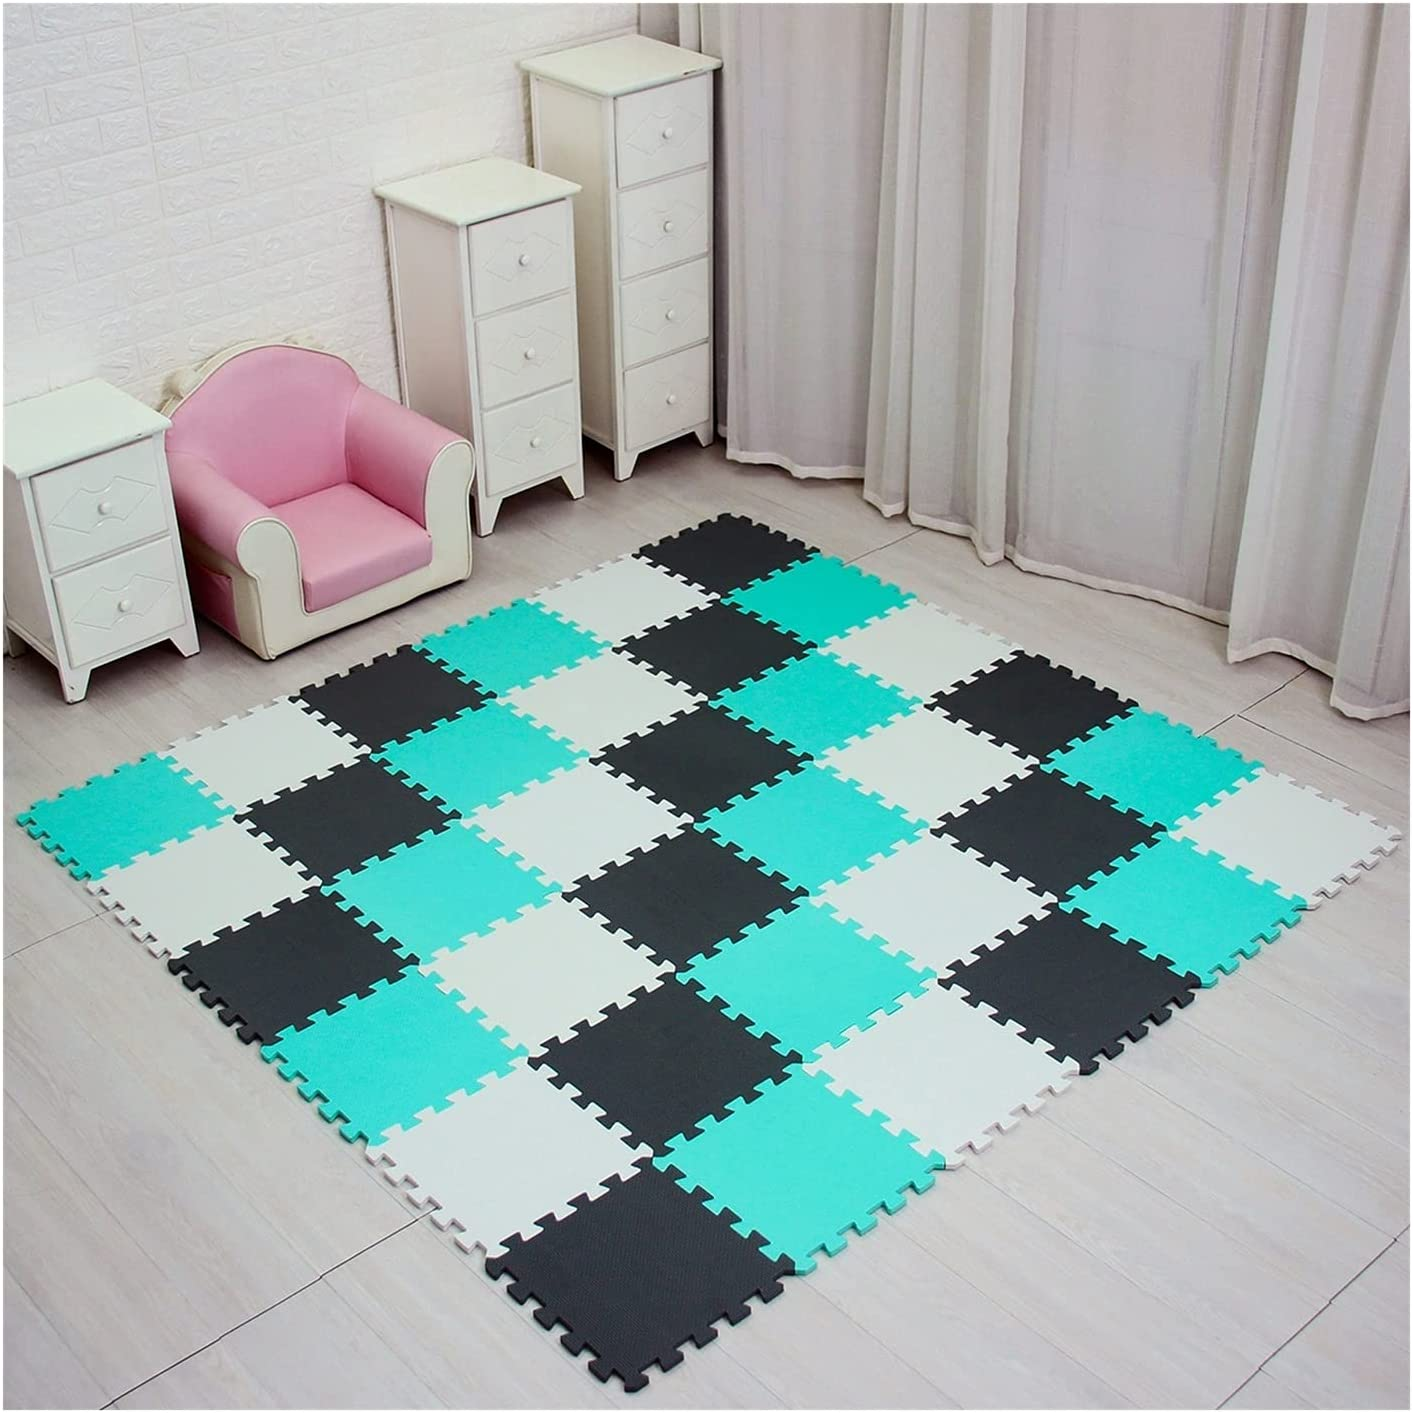 Don't miss the campaign XINGTAO Carpet Foam Max 81% OFF Play Puzzle Interlocking Kids Exerci for Mat